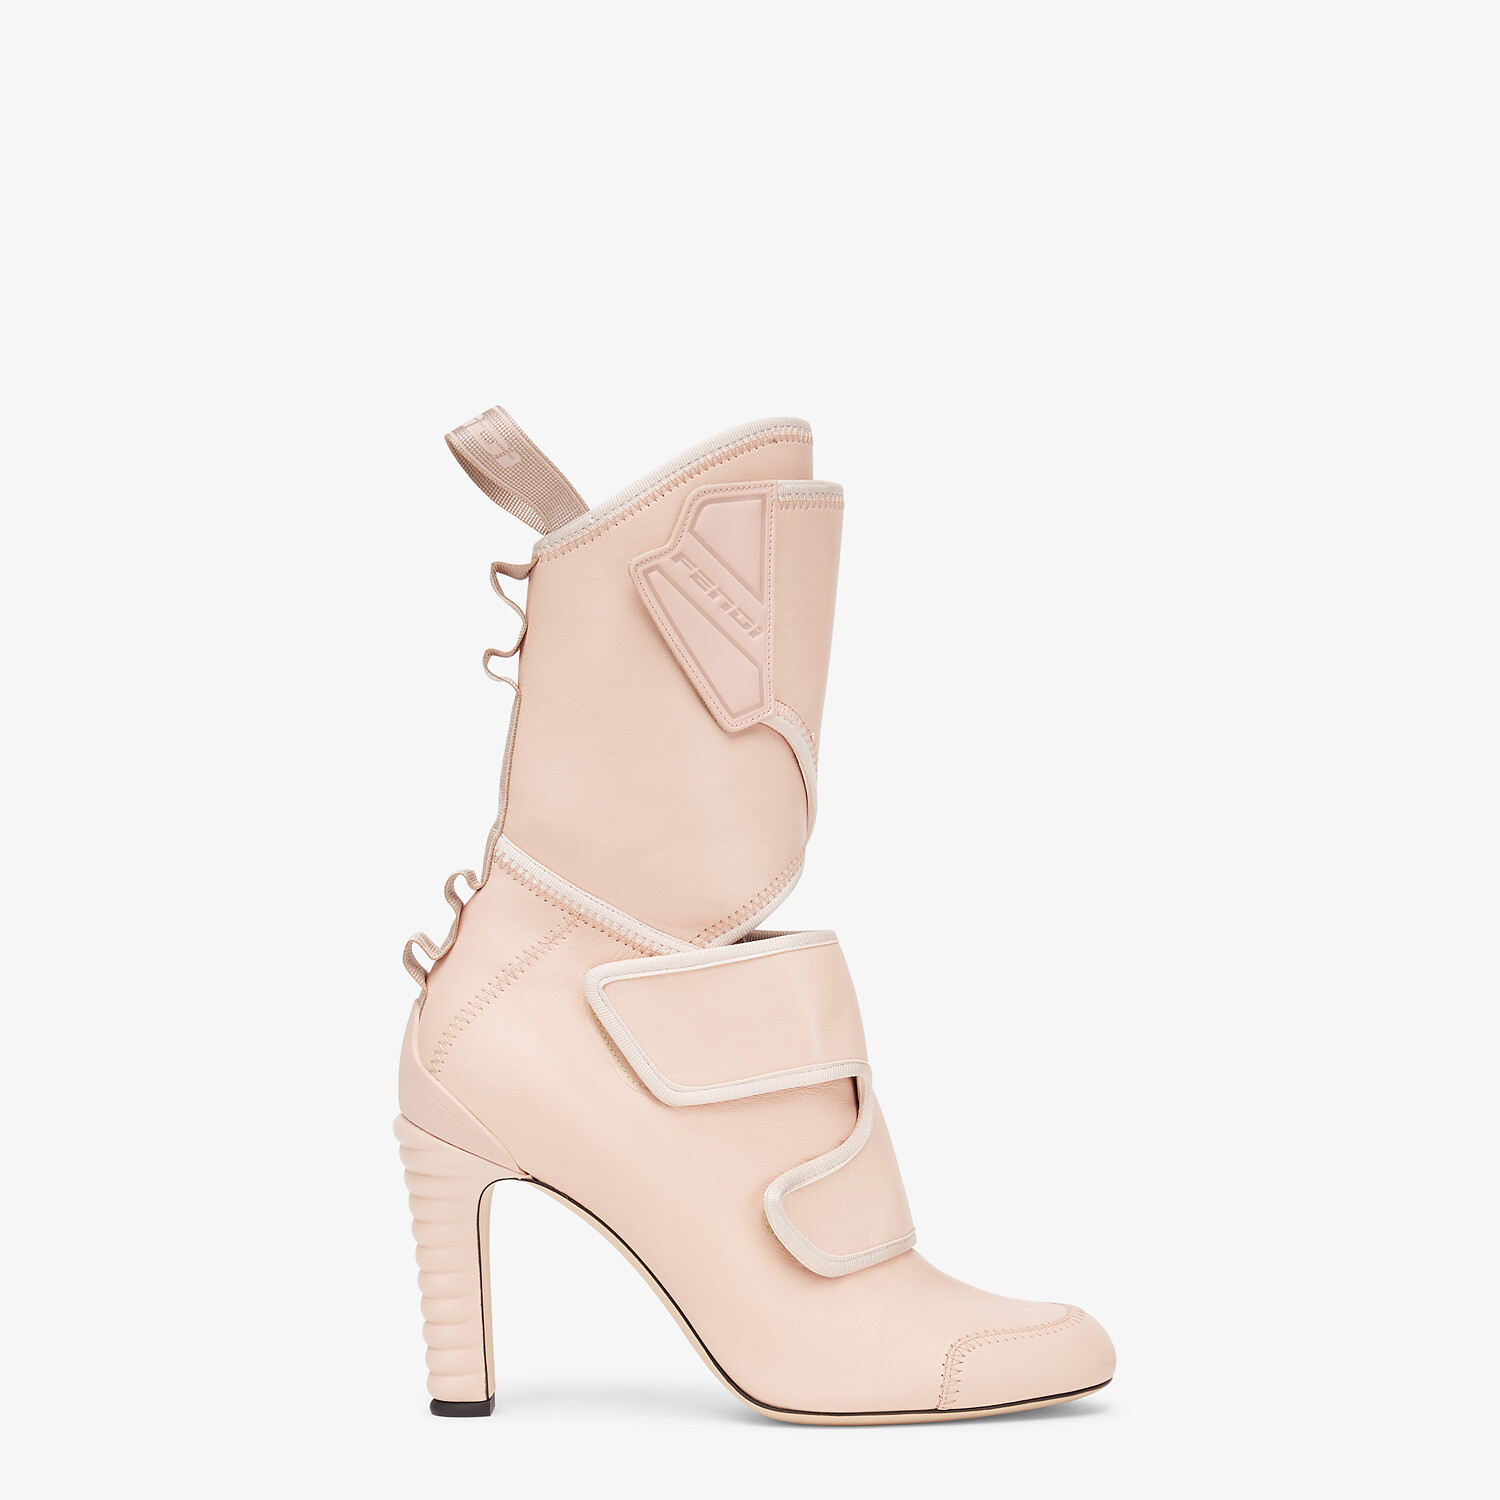 FENDI ANKLE BOOTS - Pink leather Promenade Booties - view 1 detail